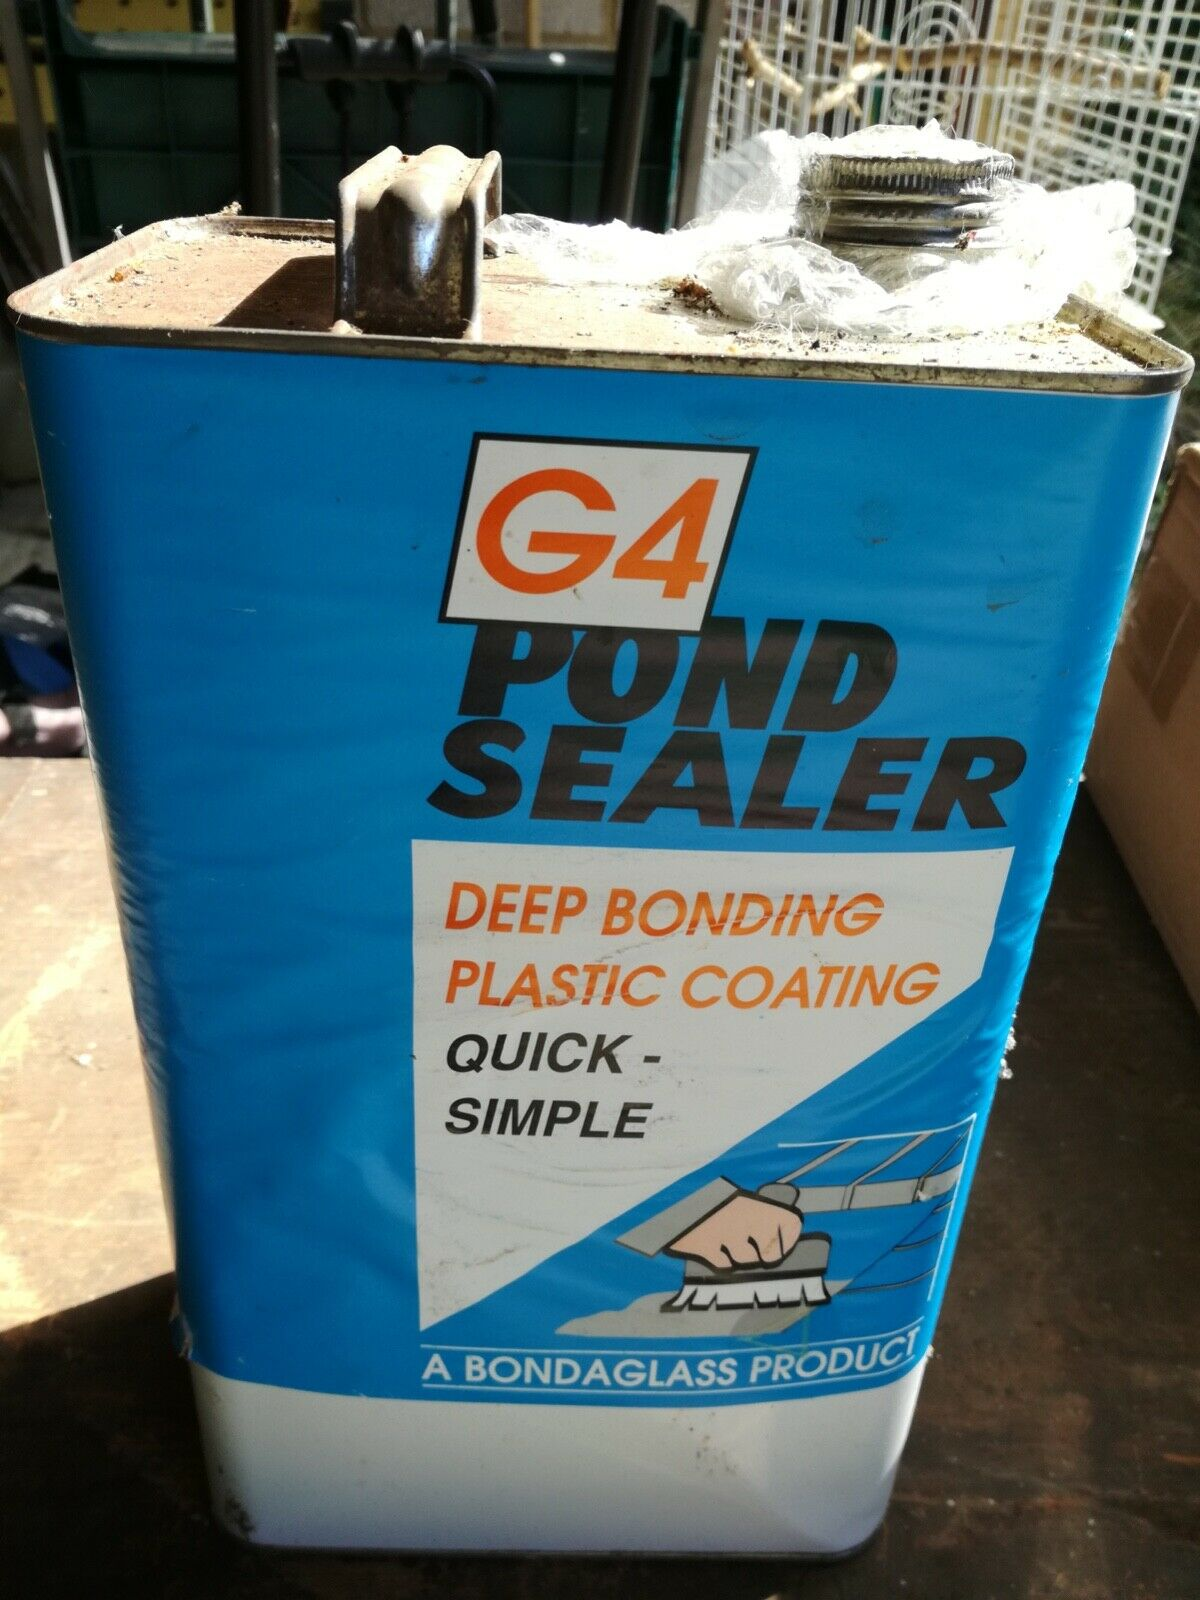 G4 POND SEALER 5KGS DEEP BONDING PLASTIC COATING - collection only - too heavy